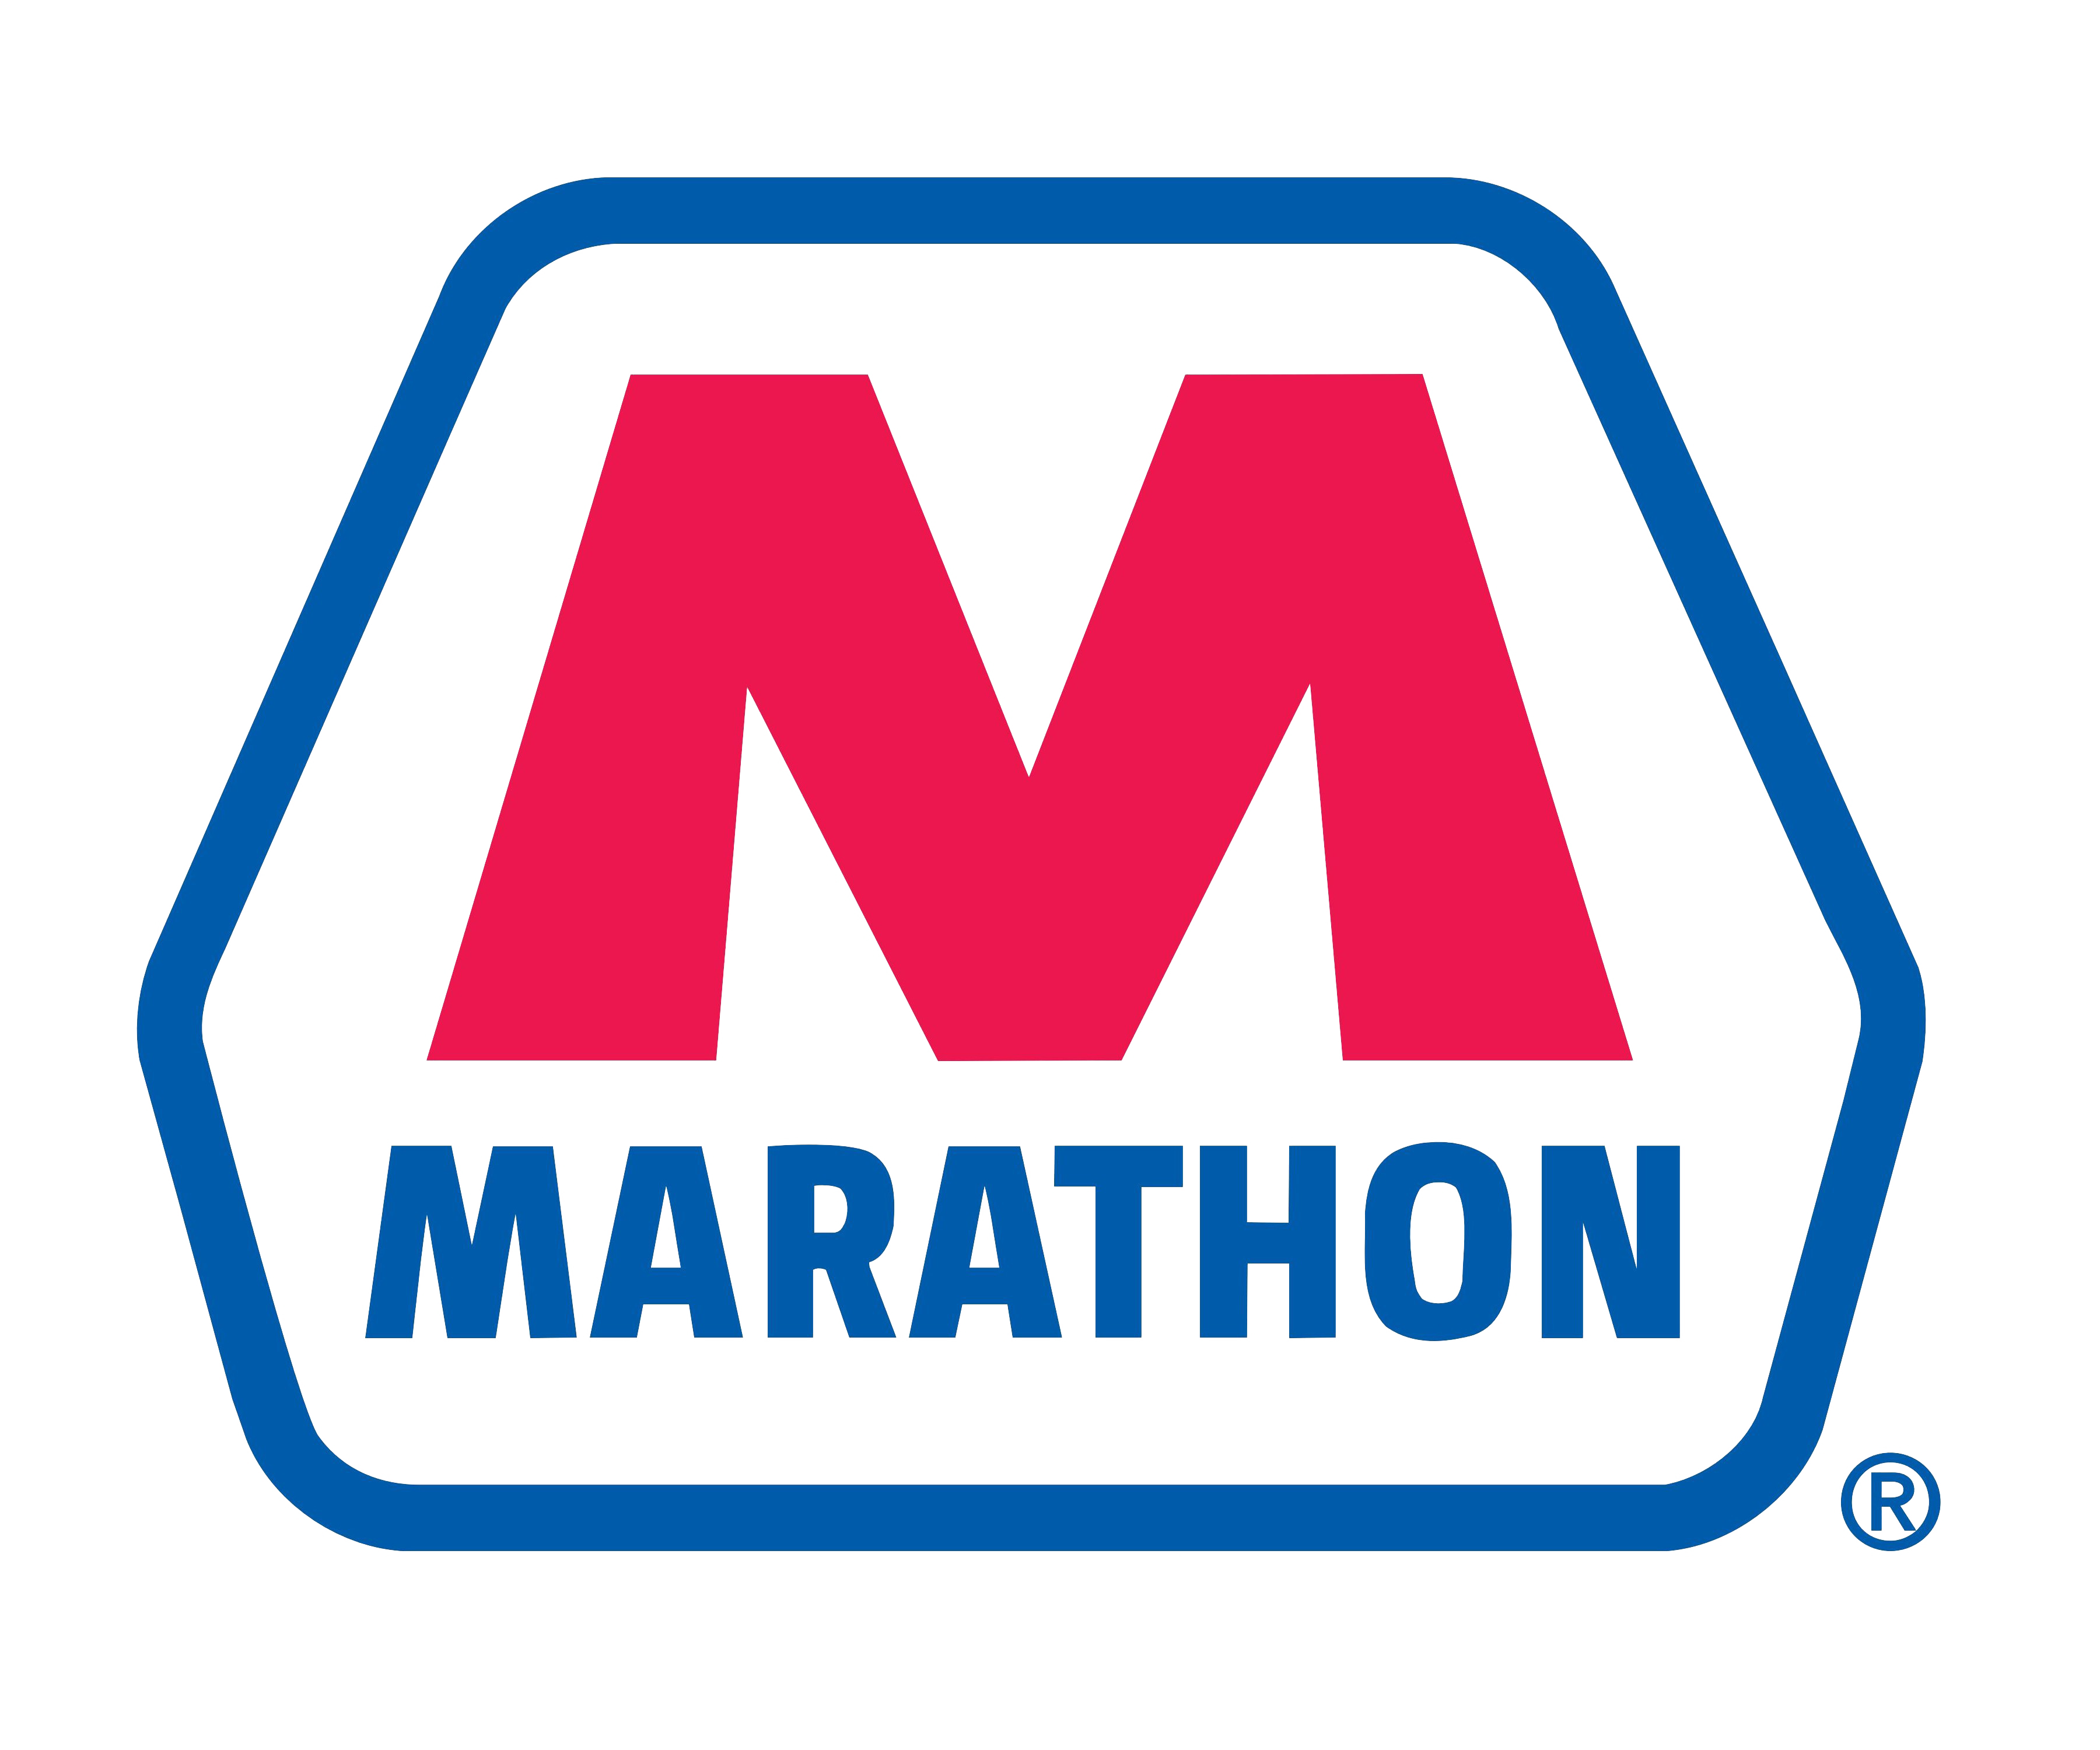 College of engineering marathon logo